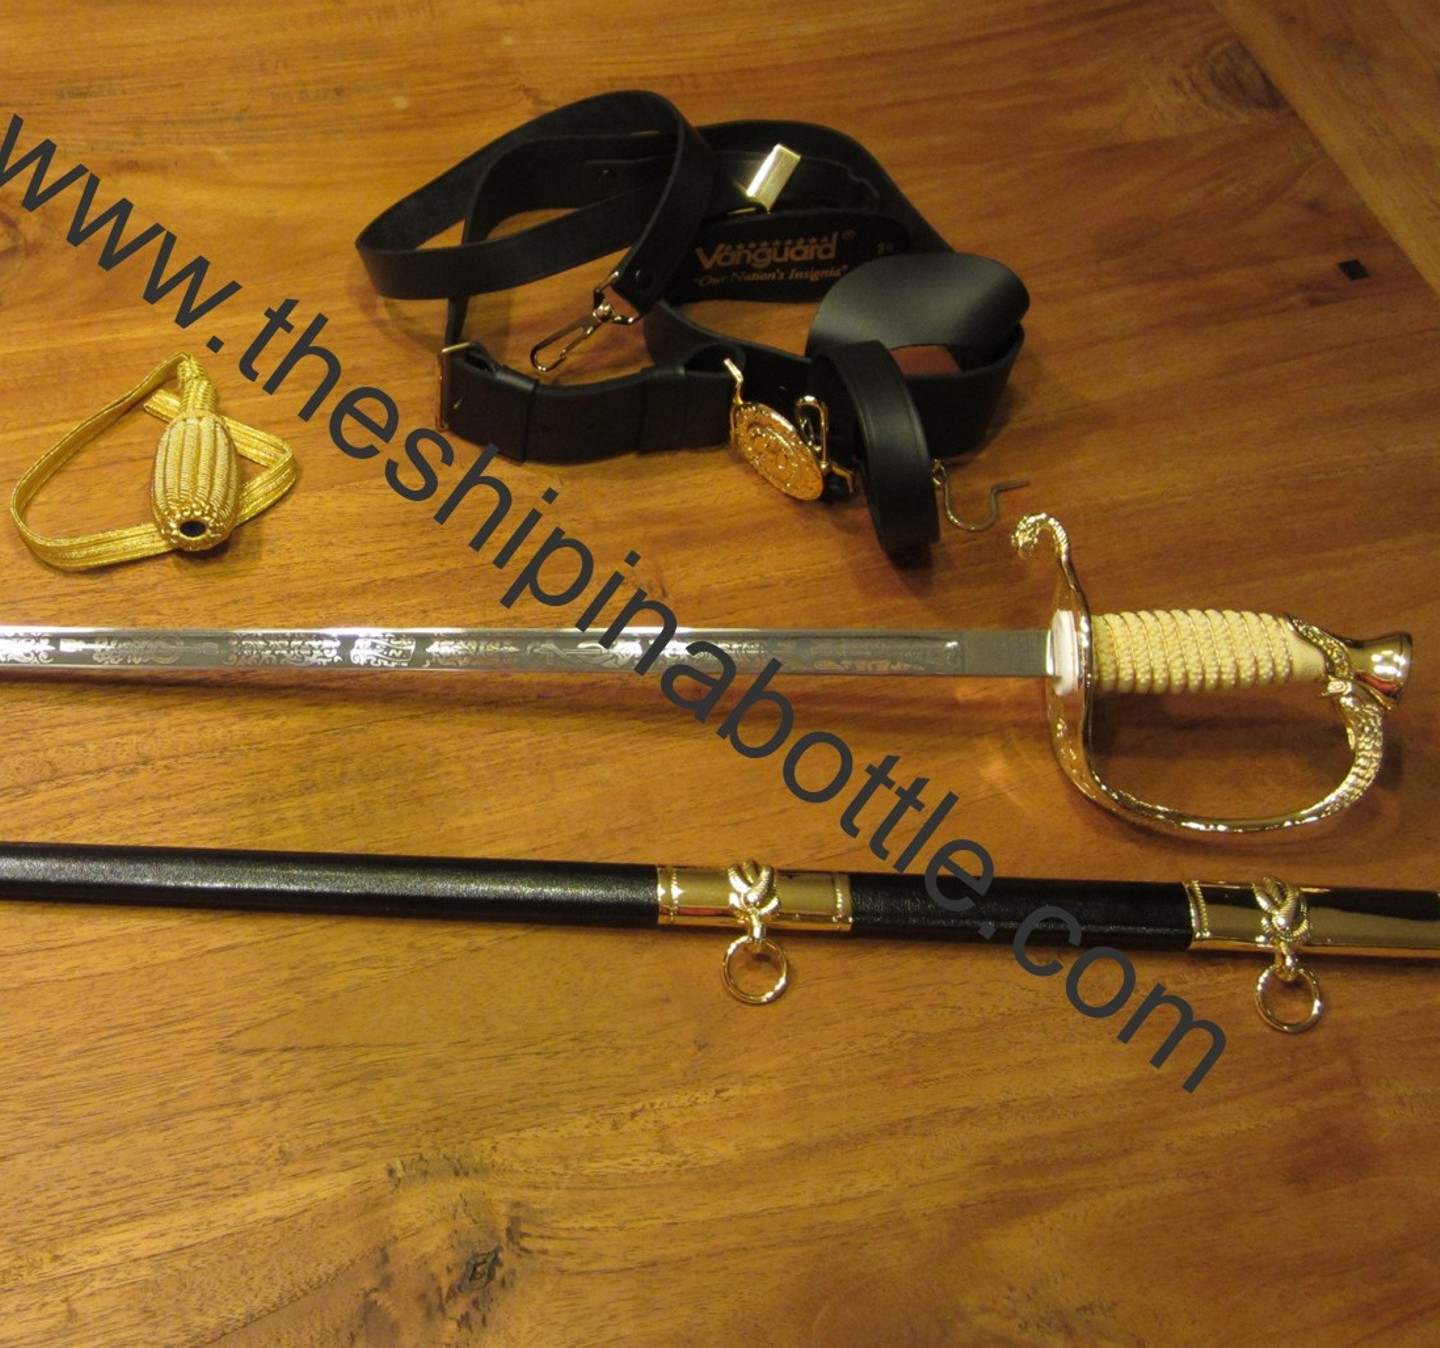 BUY the Authentic Vanguard Premium Officers Sword Package